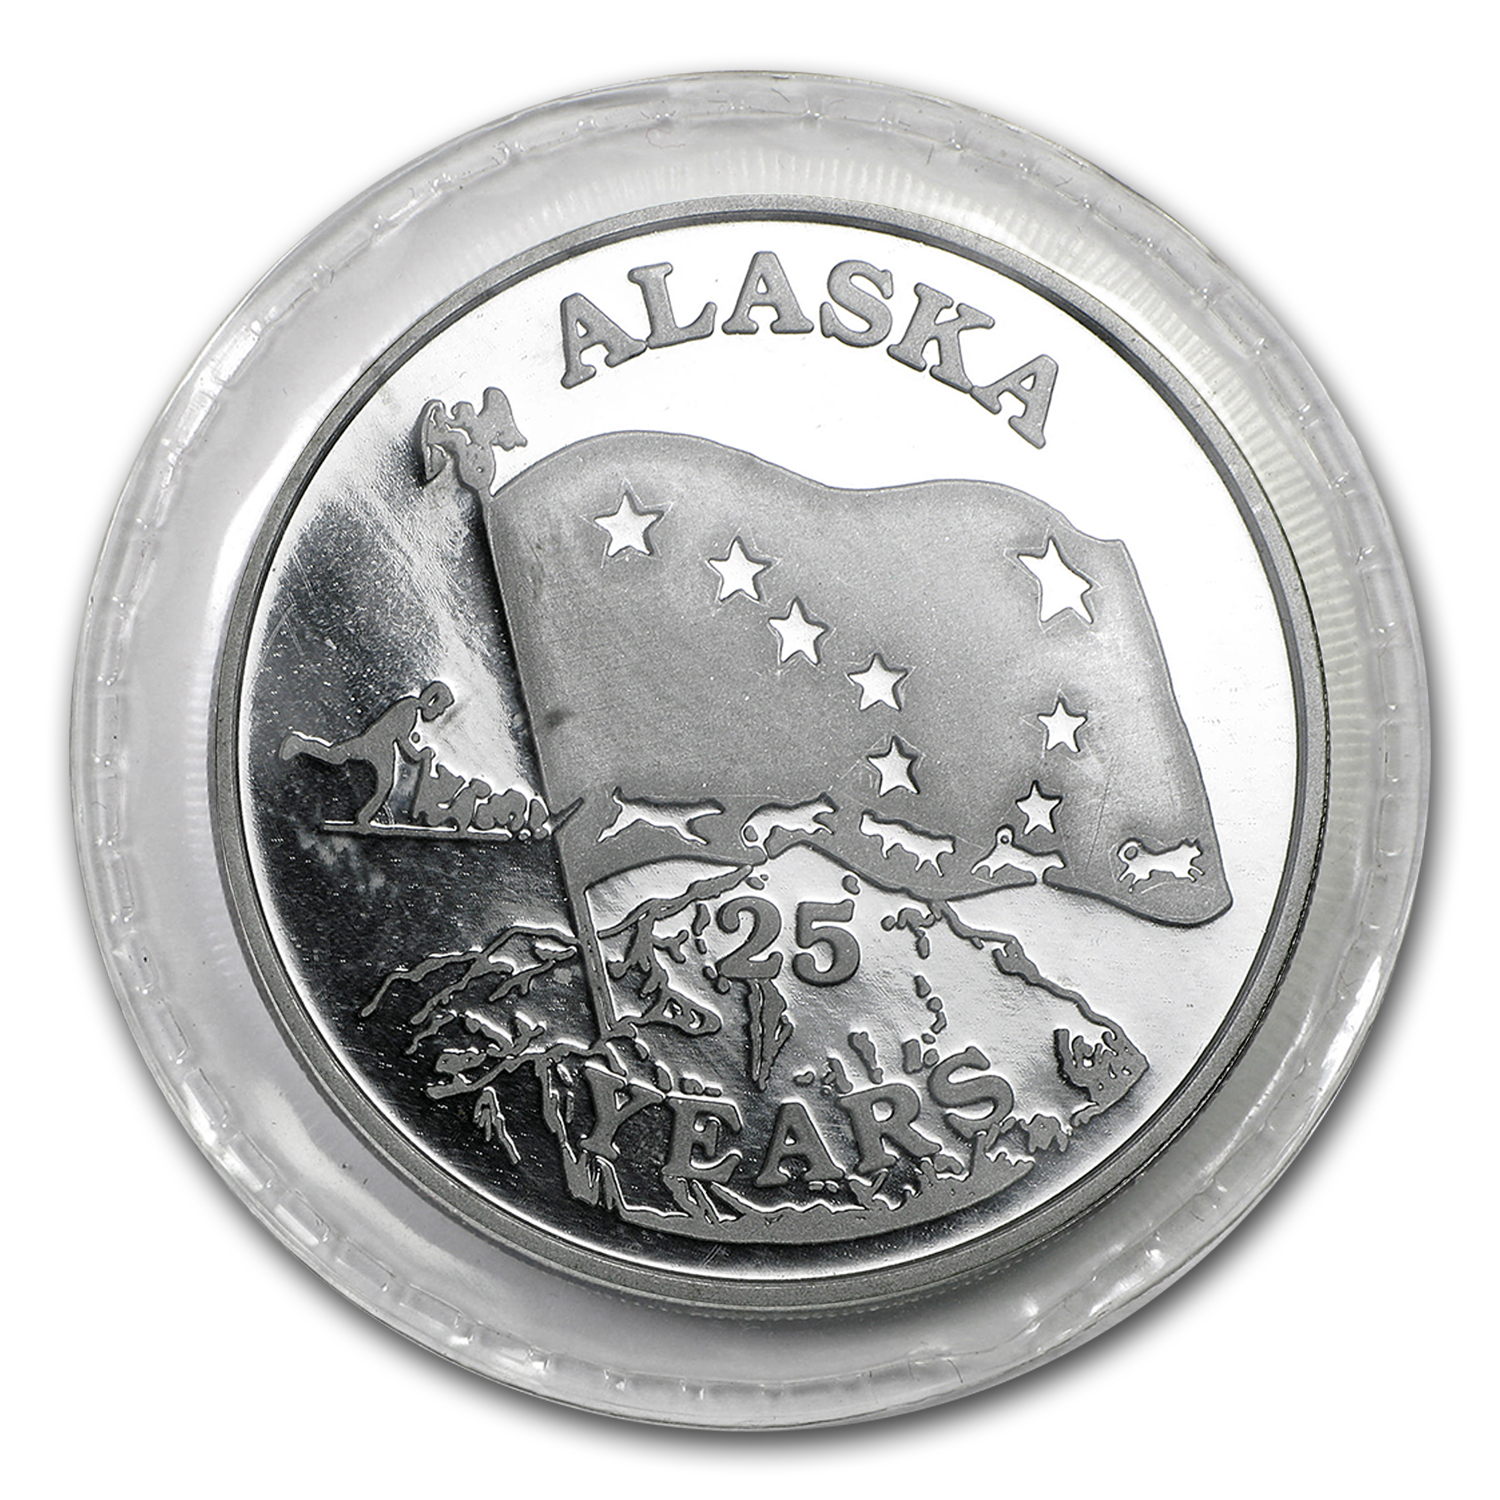 1 oz Silver Rounds - Johnson Matthey (Alaska)